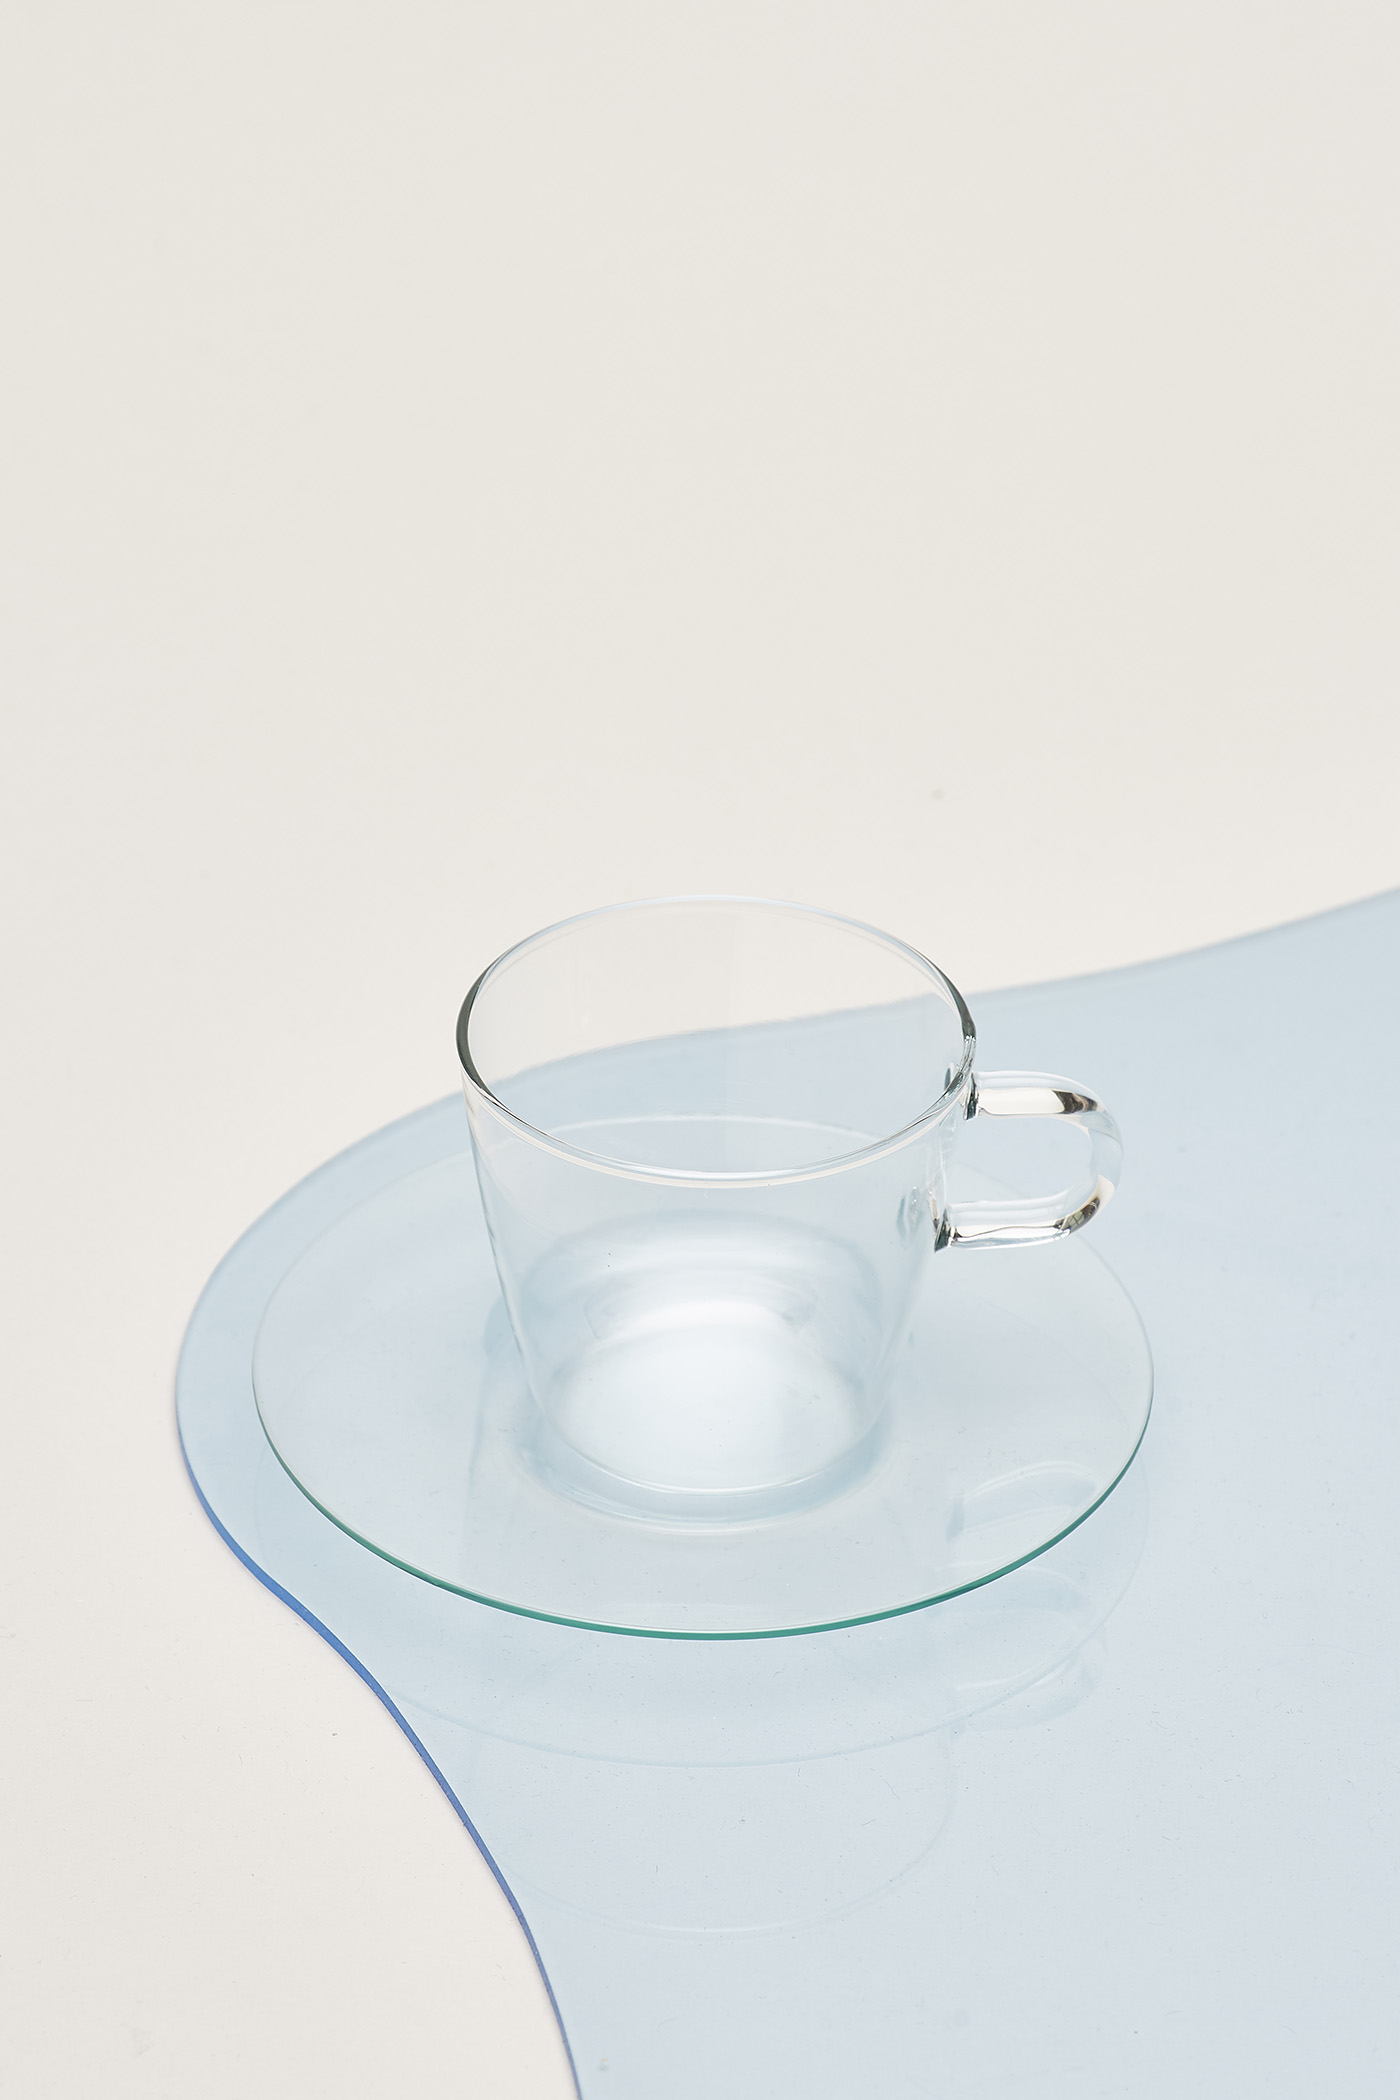 Trendglas Costa I Coffeeglass with Saucer